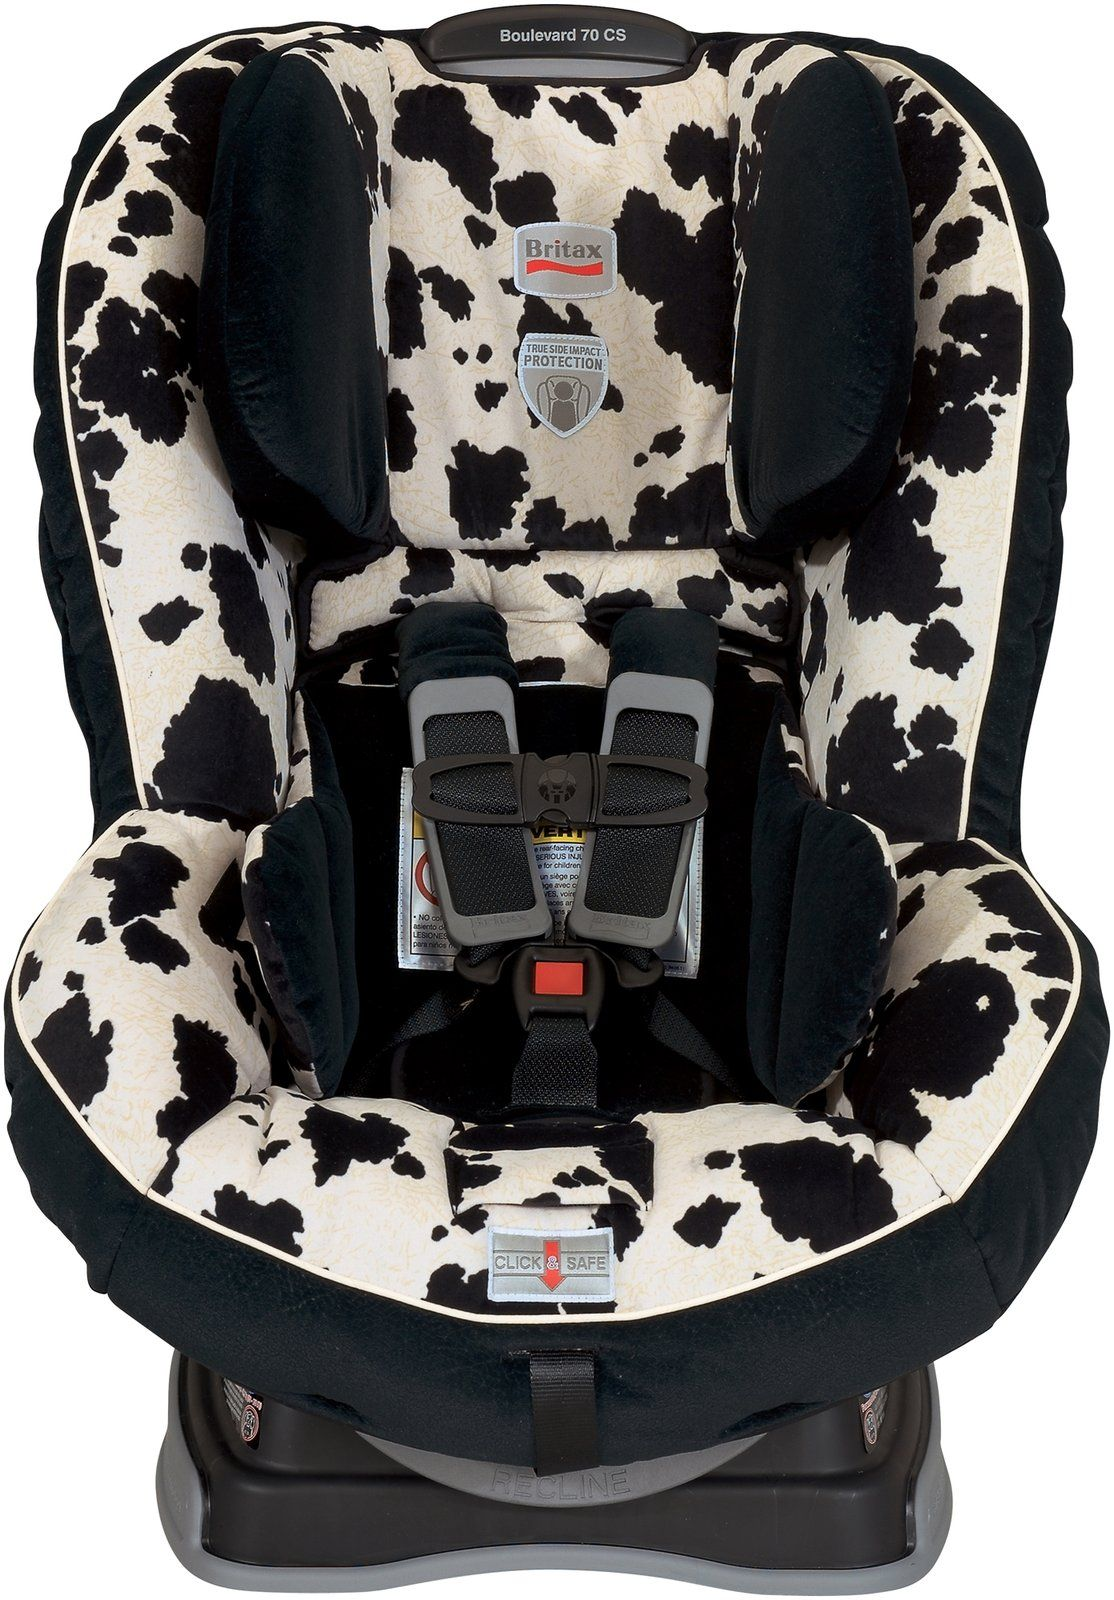 Britax Boulevard 70 Cs Cowmooflage Super Stylish Tino Will Use This When He Gets Ger